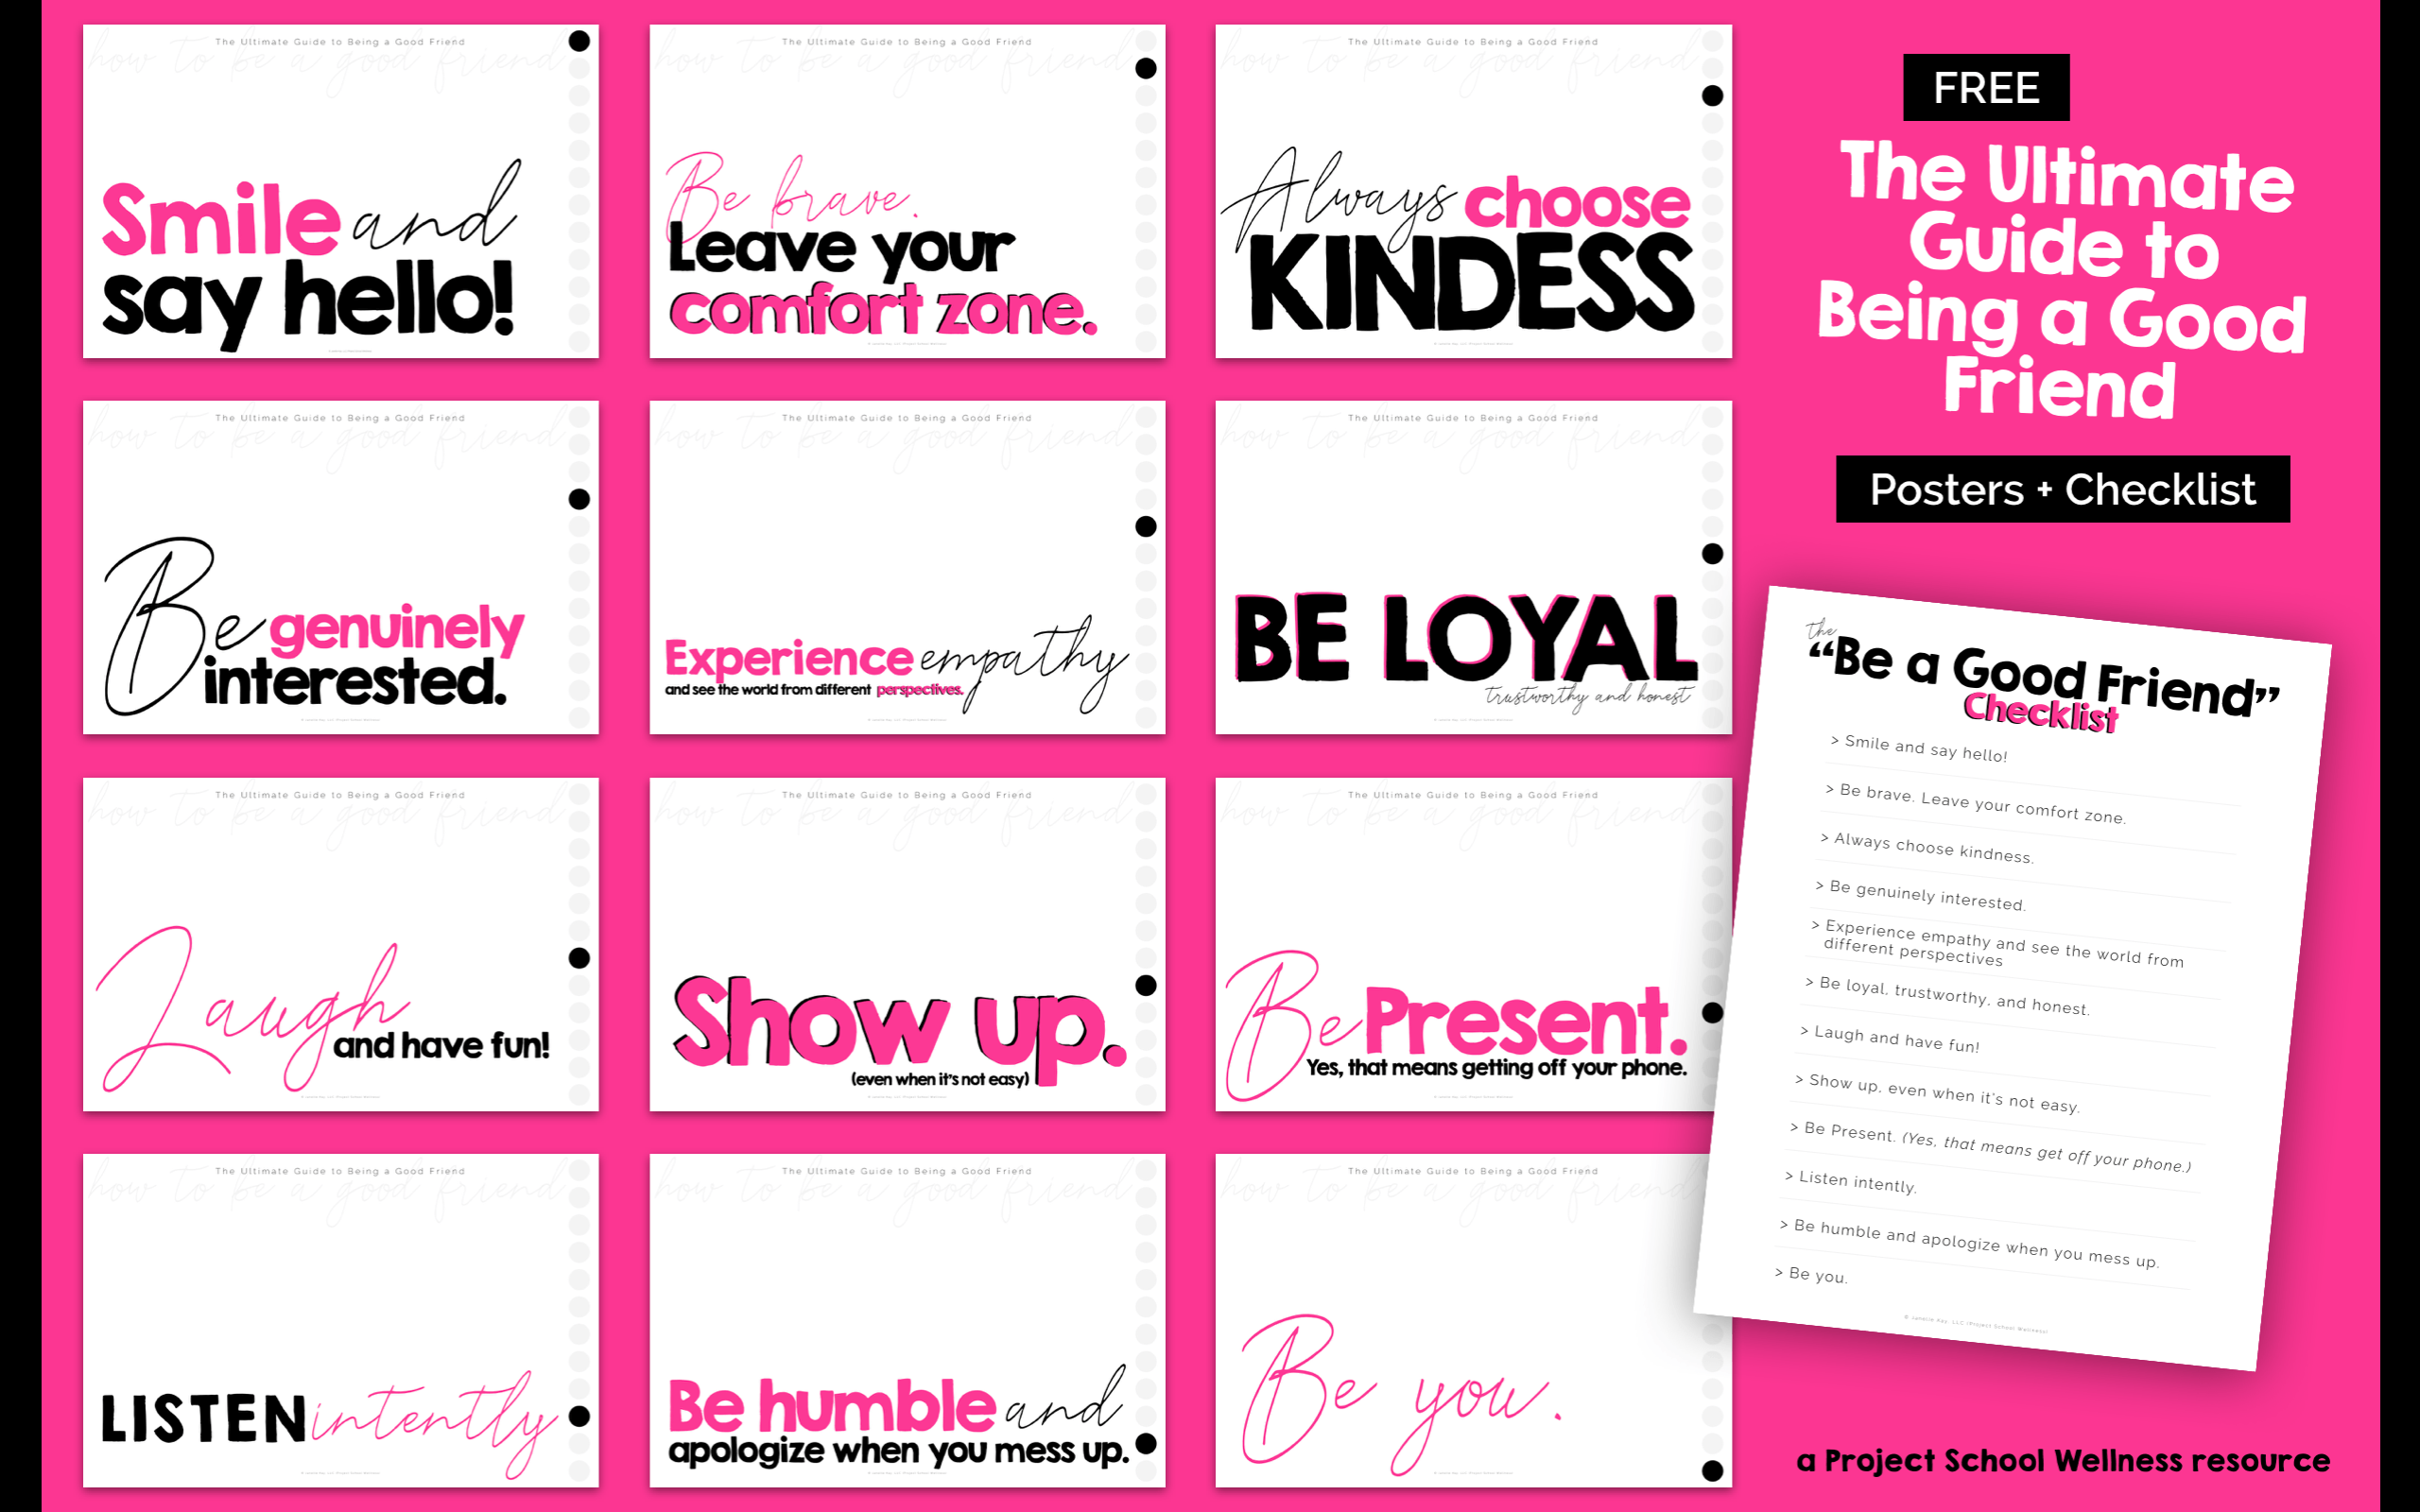 Free Classroom Posters - How to be A Good Friend. Use these posters in your classroom to promote being a good friend. Each poster features a social habit connected to being a good friend. These free classroom posters are perfect for any middle school classroom across the curriculum. Head over to Project School Wellness to download and print your posters.